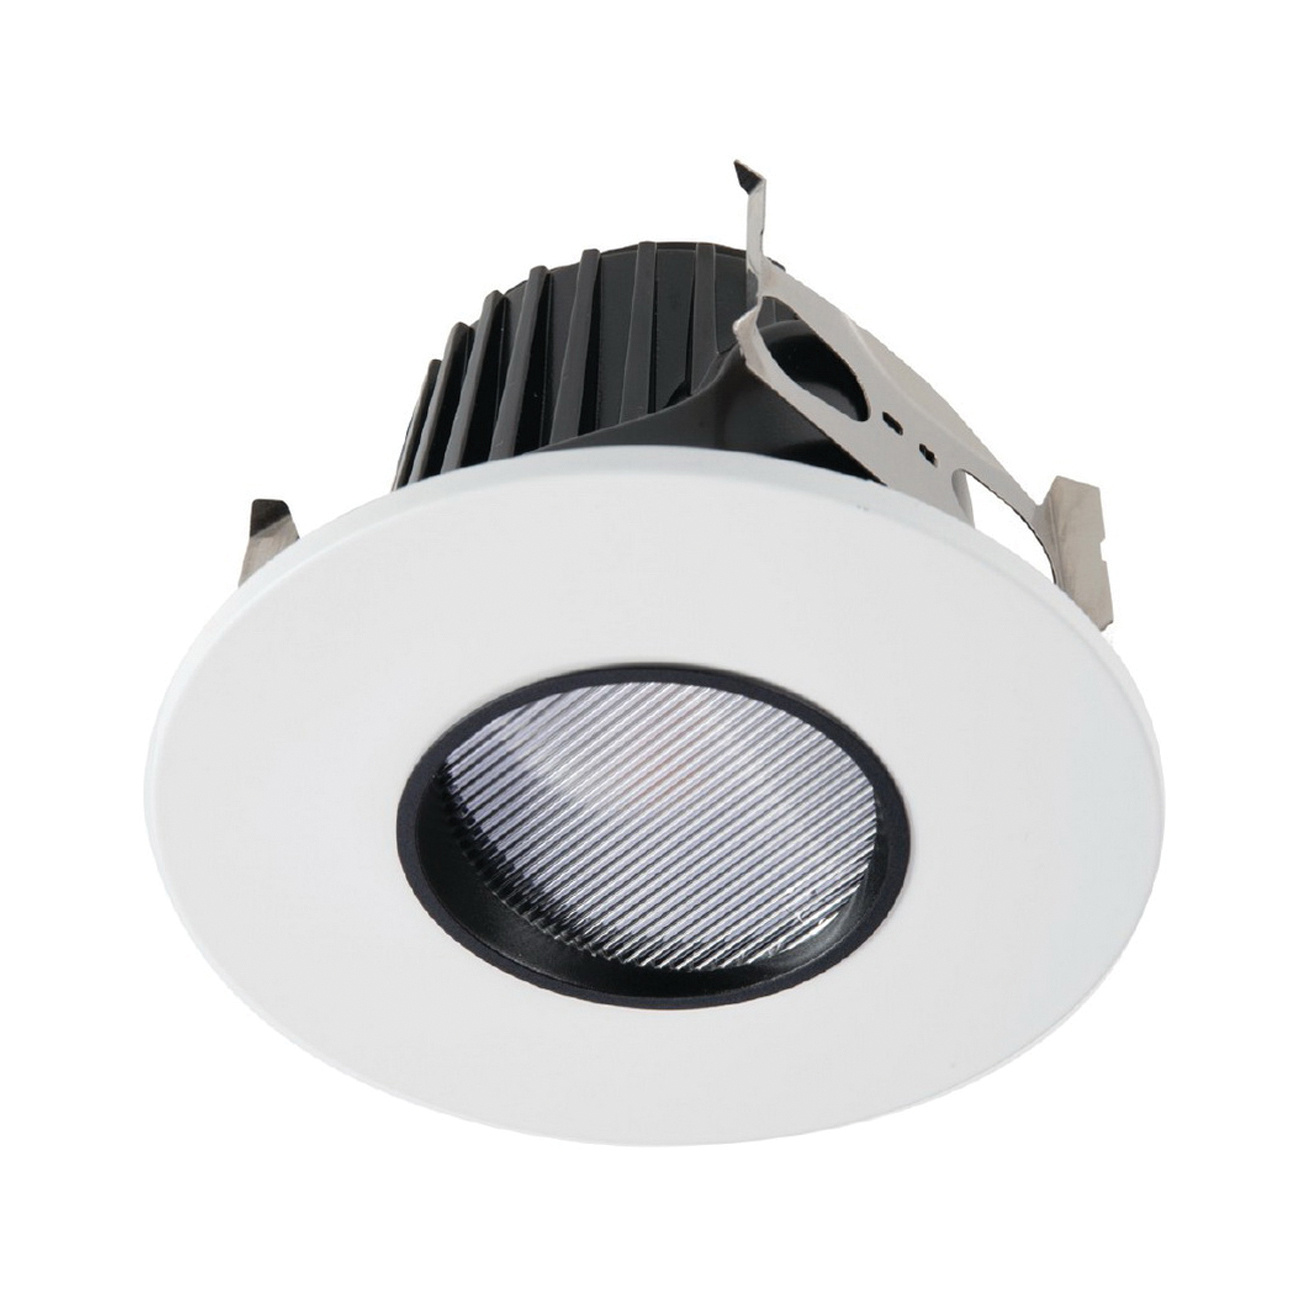 Halo Home Ml4d 09 Fl 927 E Dimmable 4 Inch Flood Distribution Led Recessed Pinhole Down Light 12 8 Watt At 120 Volt 12 5 Watt At 277 Volt Recessed Lighting Indoor Fixtures Lighting